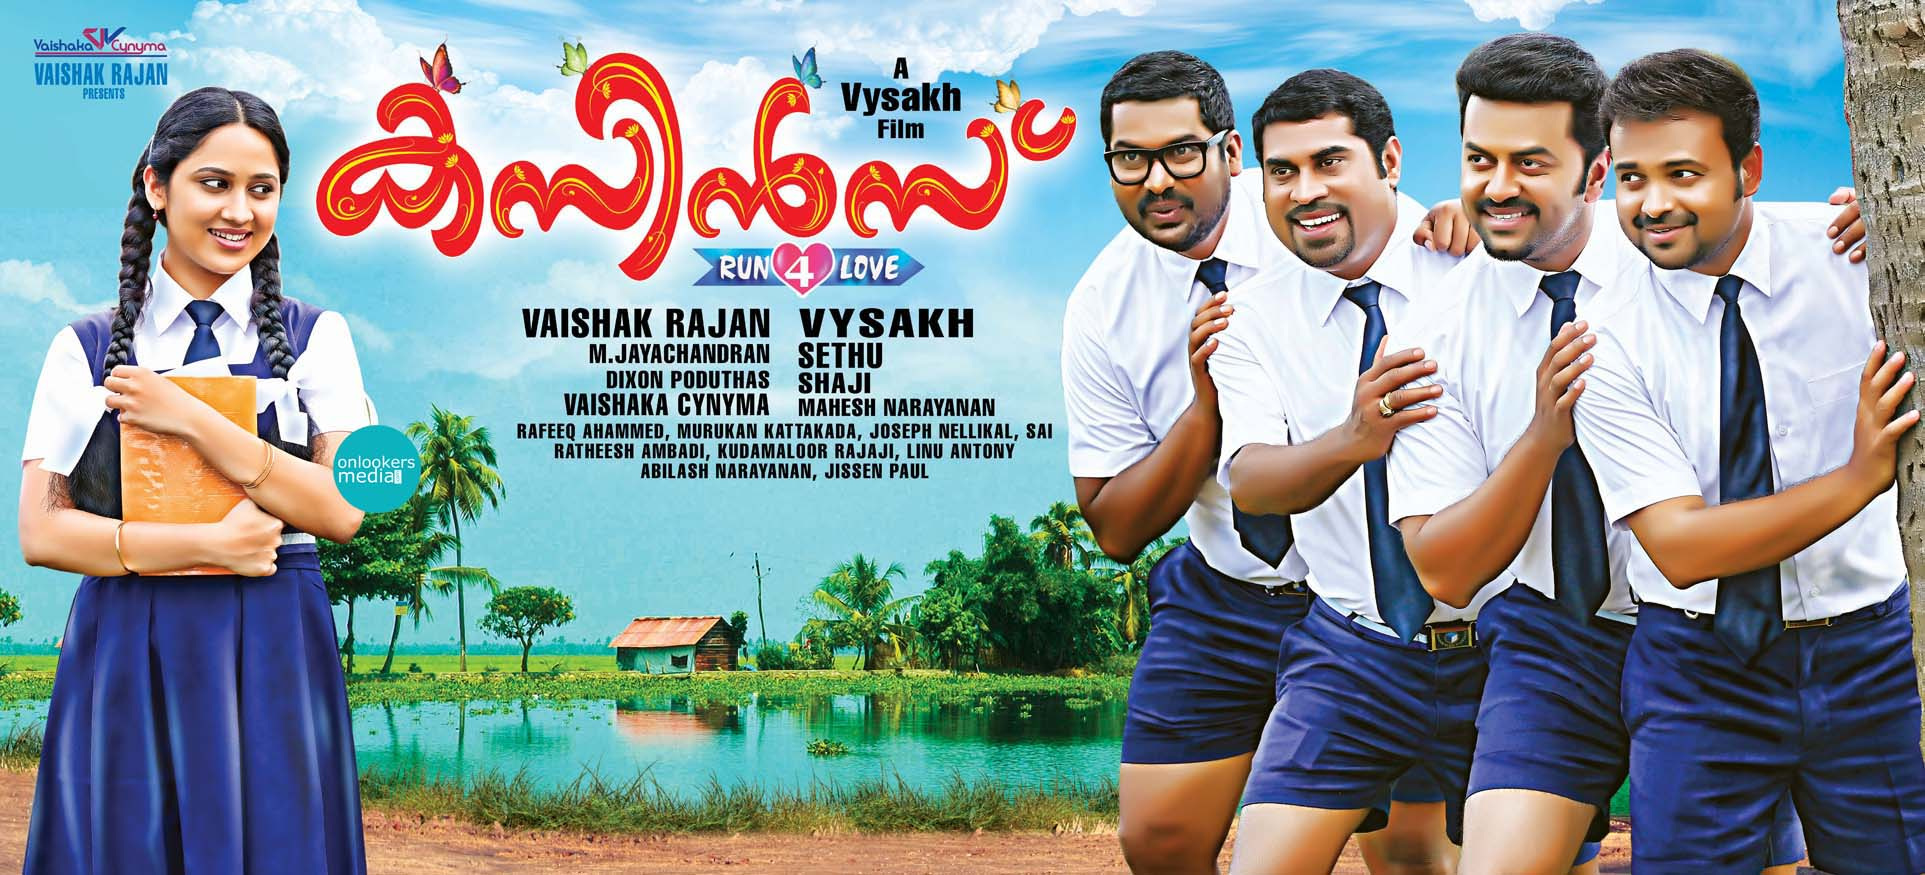 http://onlookersmedia.in/wp-content/uploads/2014/12/Cousins-Posters-Stills-Images-Review-Report-Collection-Kunchacko-Boban-Indrajith-Nisha-Agarwal-Vedhika-Miya-Onlookers-Media-12.jpg